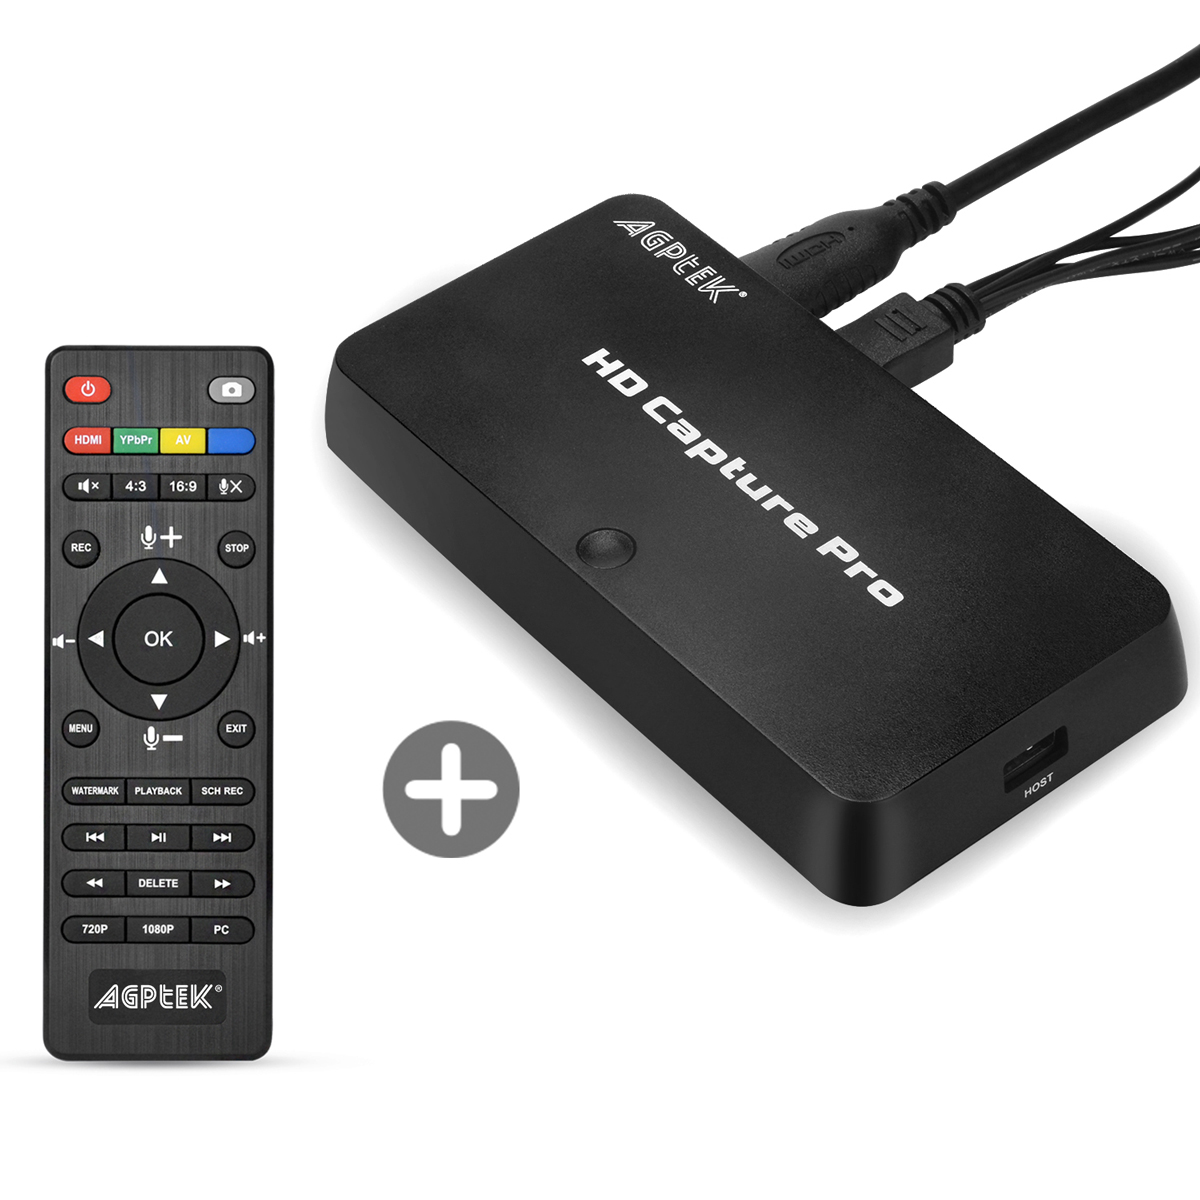 AGPtek 1080P HD Video Capture Live Streaming Video w/ Game Capture for Nintendo Switch PS4 and PS3, XBOX ONE,play back videos /schedule recording with the remote control.